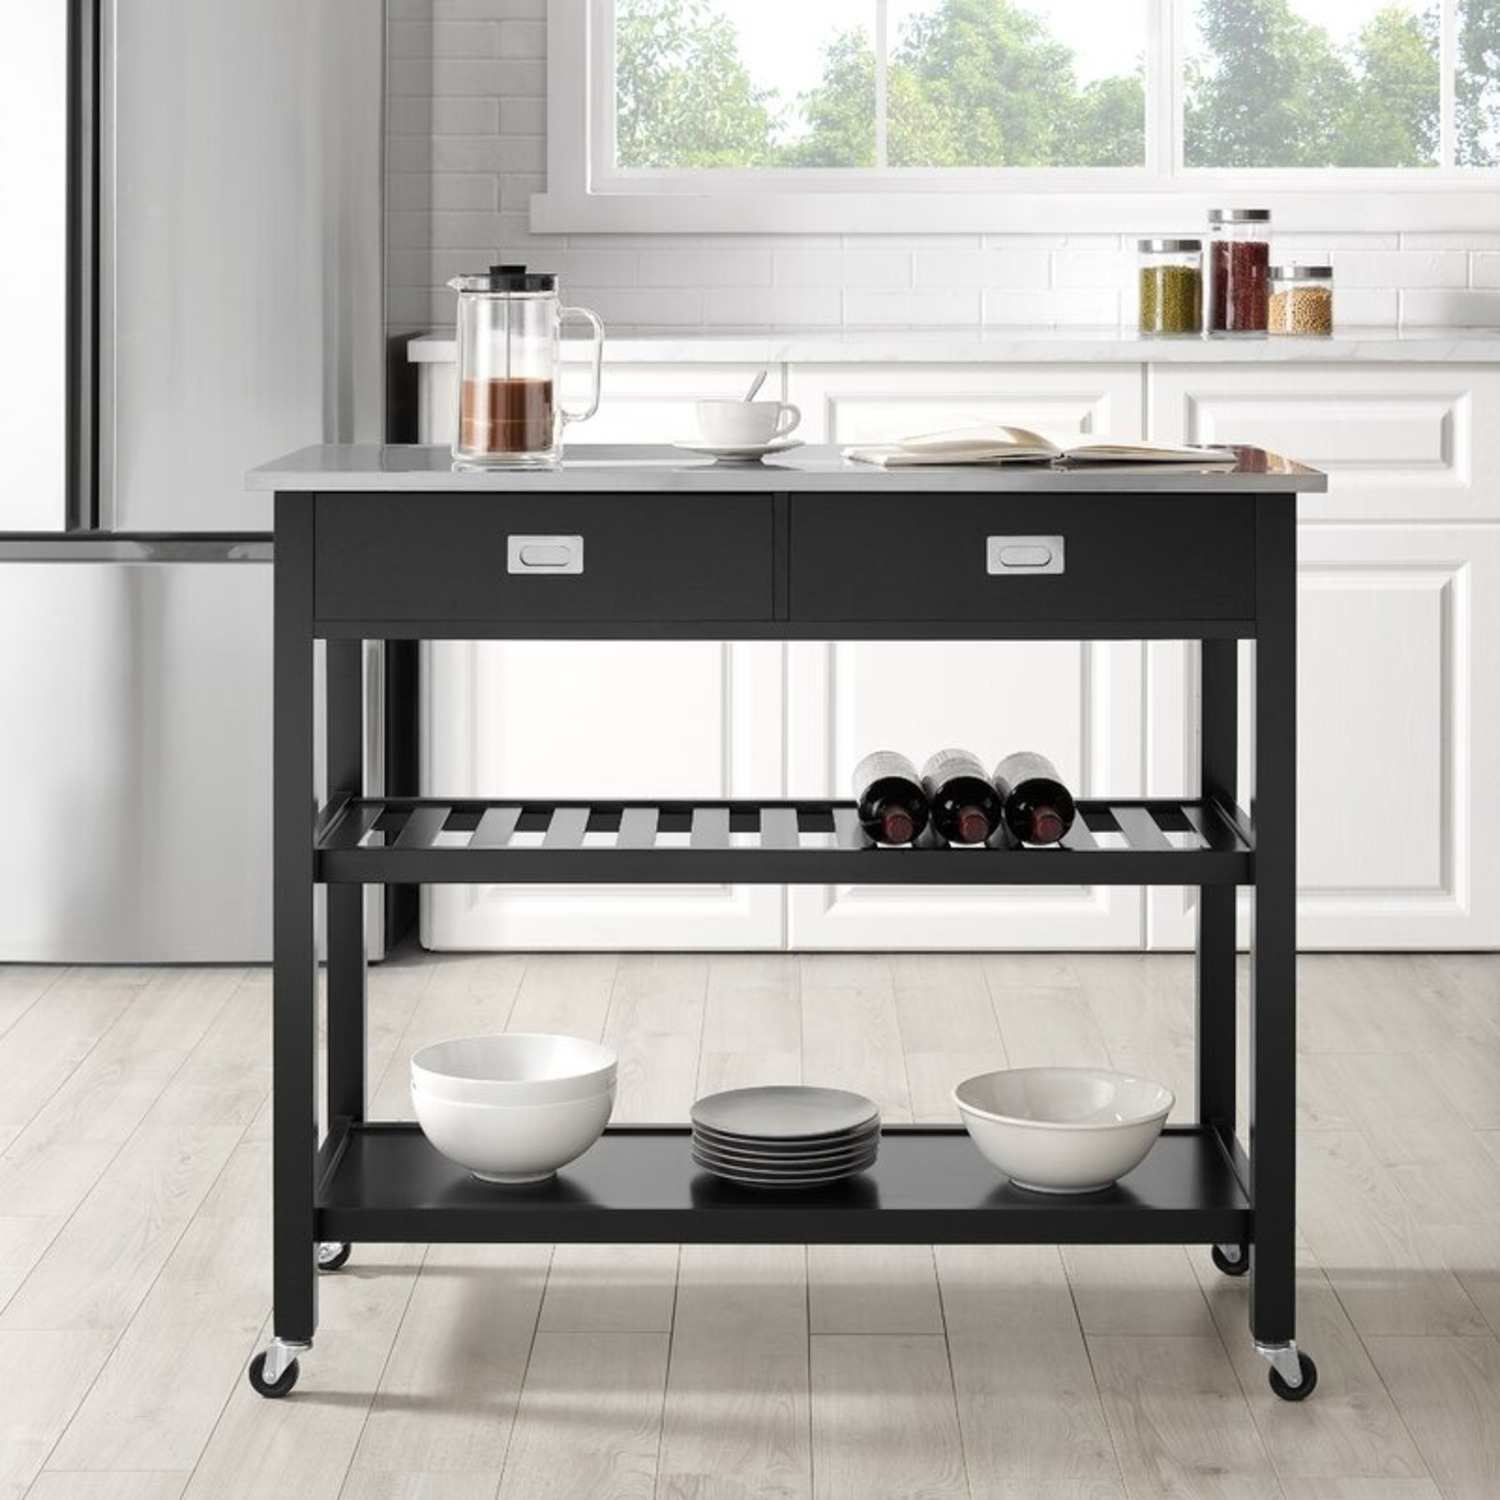 Wayfair Kitchen Island with Stainless Steel Top - image-1